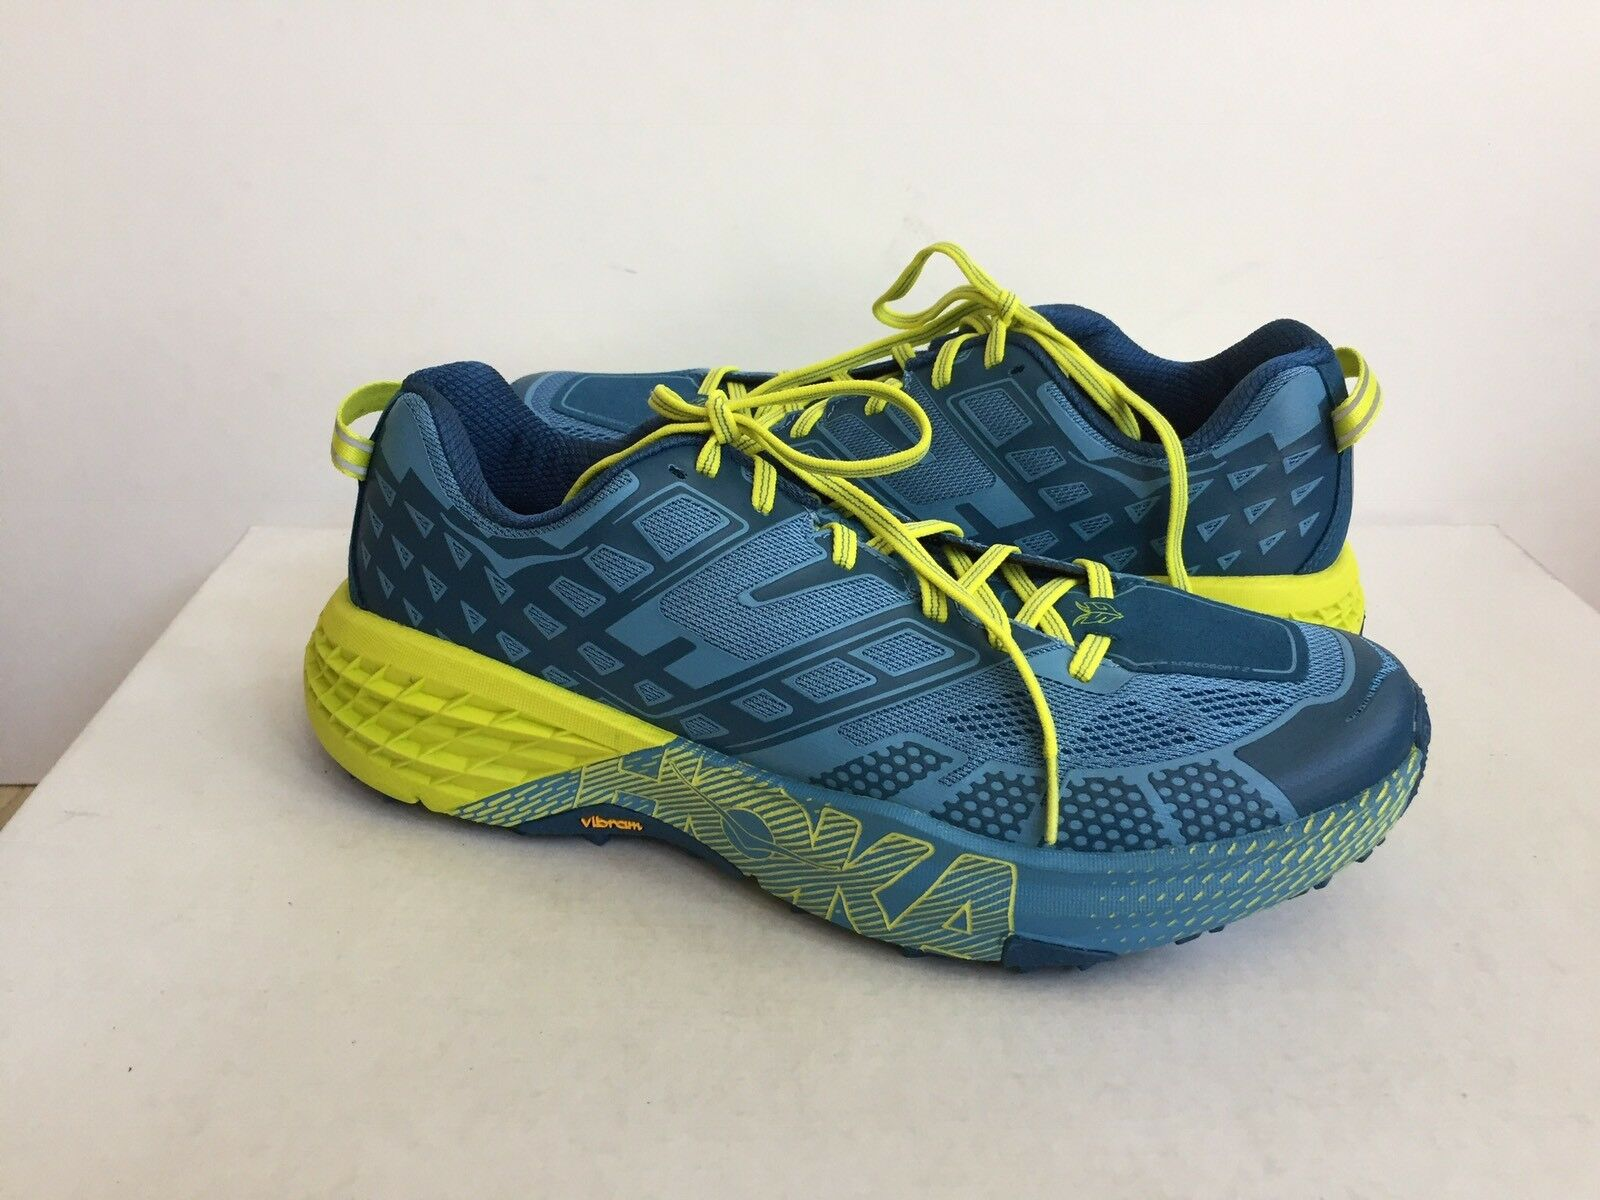 HOKA ONE ONE MEN SPEEDGOAT 2 MIDNIGHT   NIAGARA schuhe US 9   EU 42 2 3   UK 8.5